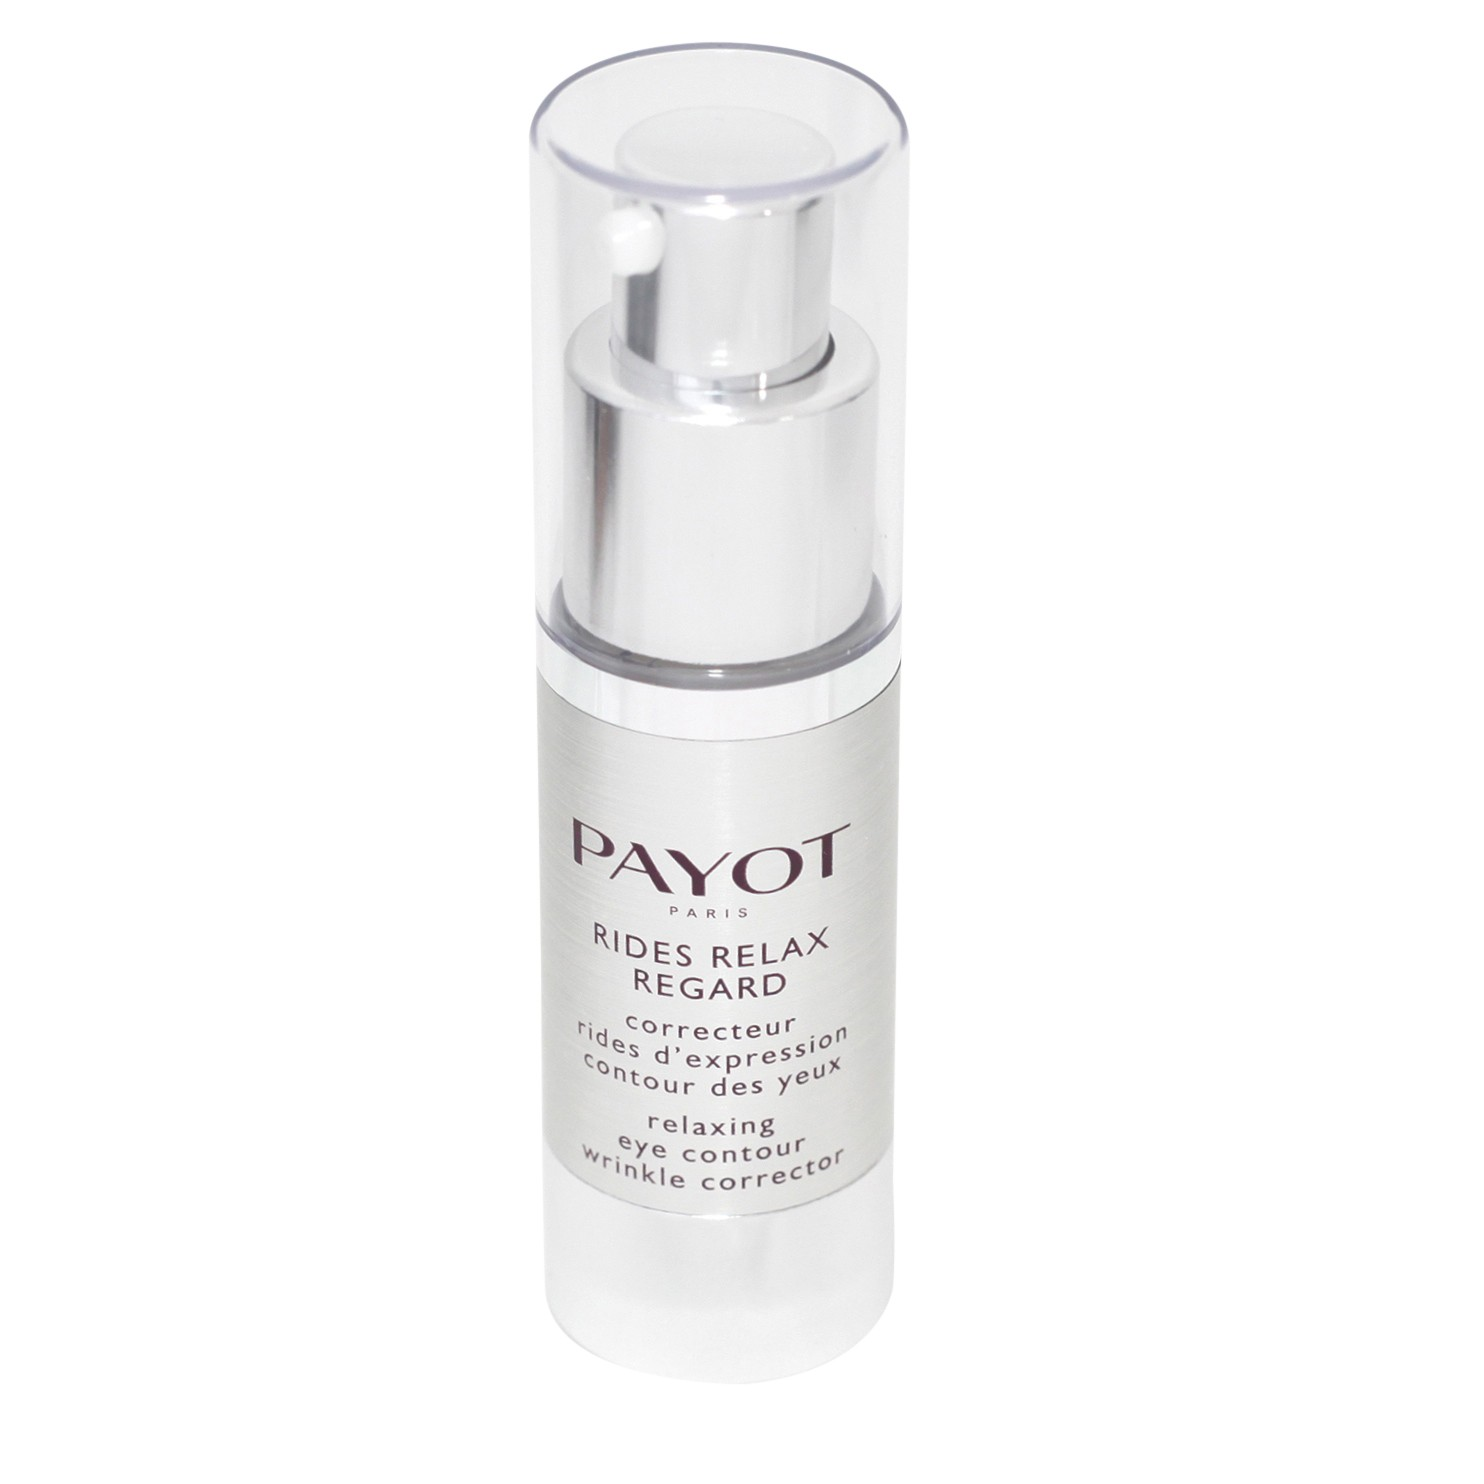 PAYOT RIDES RELAX REGARD Relaxing eye contour wrinkle corrector 15 ml 0,5 fl.oz